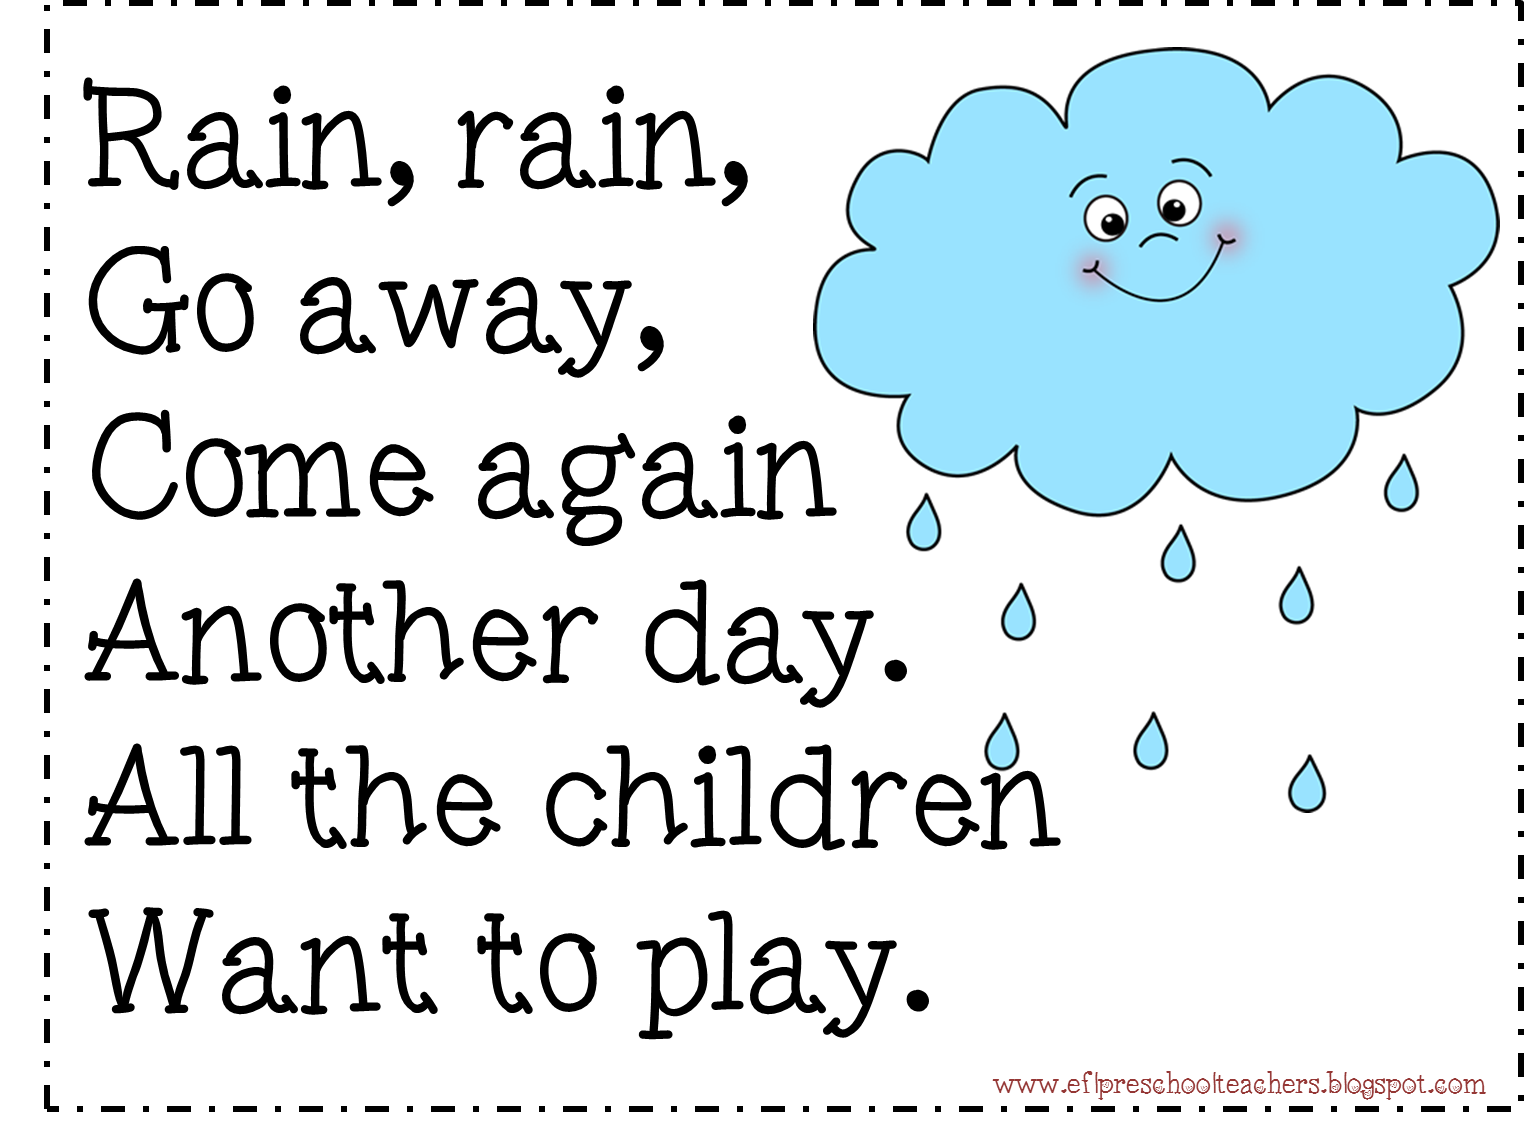 Esl Efl Preschool Teachers Weather Blog The Weather